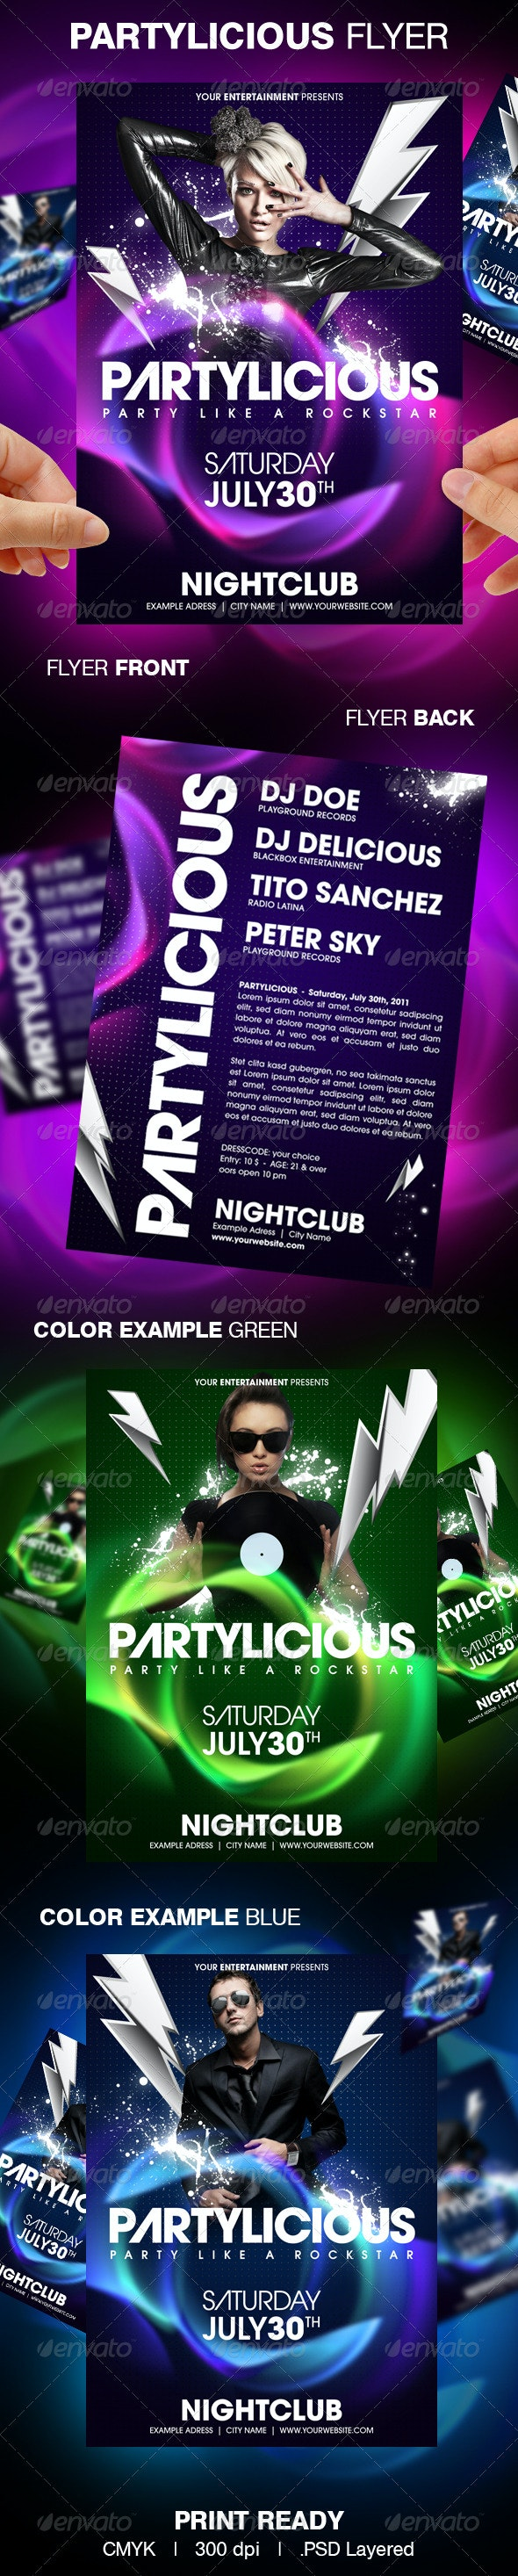 Partylicious Party Flyer - Clubs & Parties Events